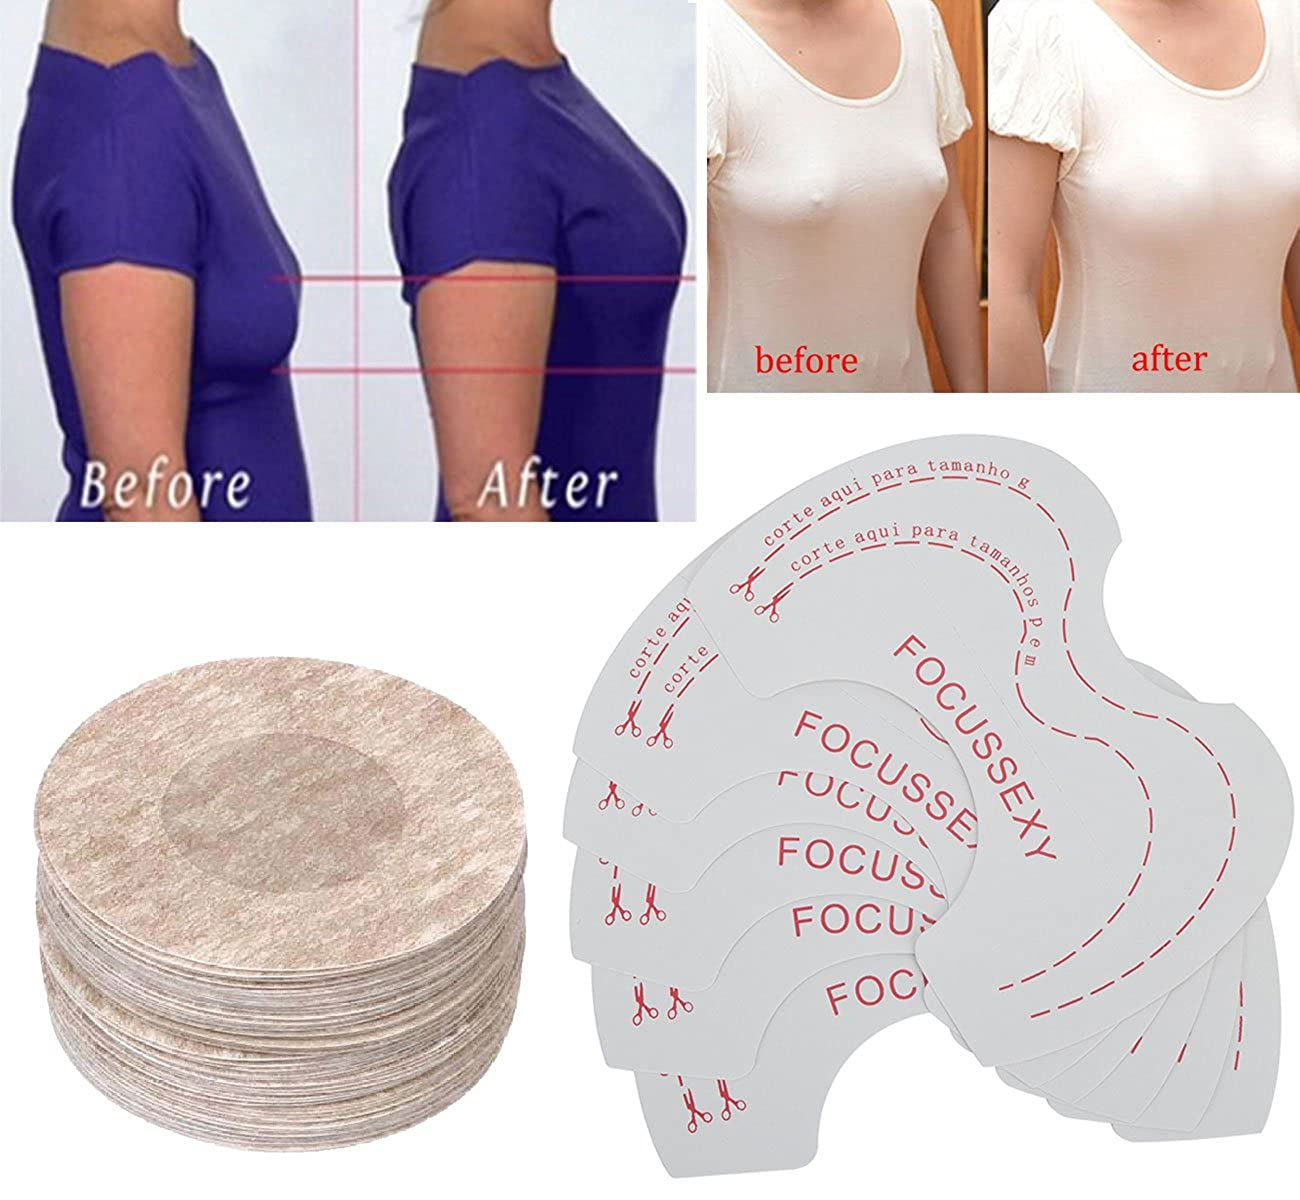 b691073d57 Careonline Adhesive Breast Lift and Nipple Covers Bra Boob Lift Bra  Uplifting Tape Disposable at Amazon Women s Clothing store